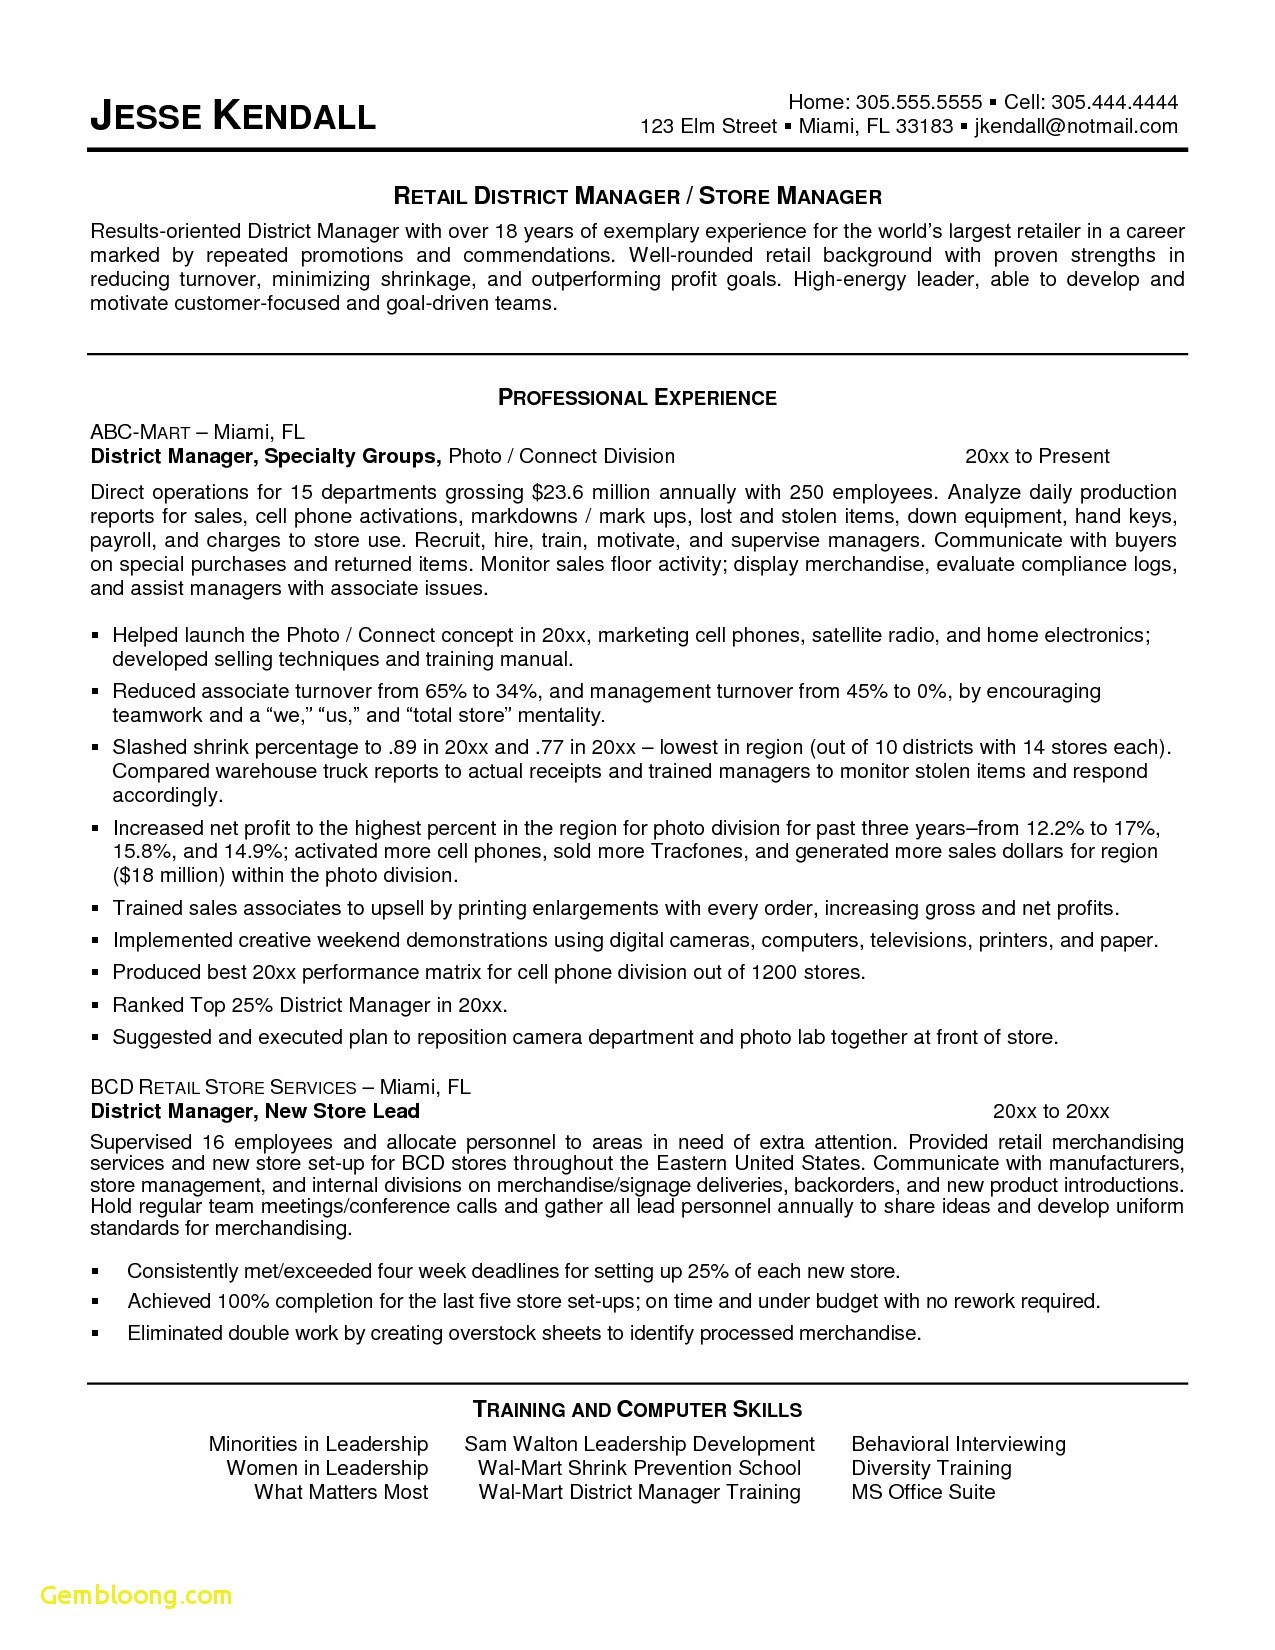 Restaurant Manager Resume Template - Customer Service Manager Resume Unique Fresh Grapher Resume Sample